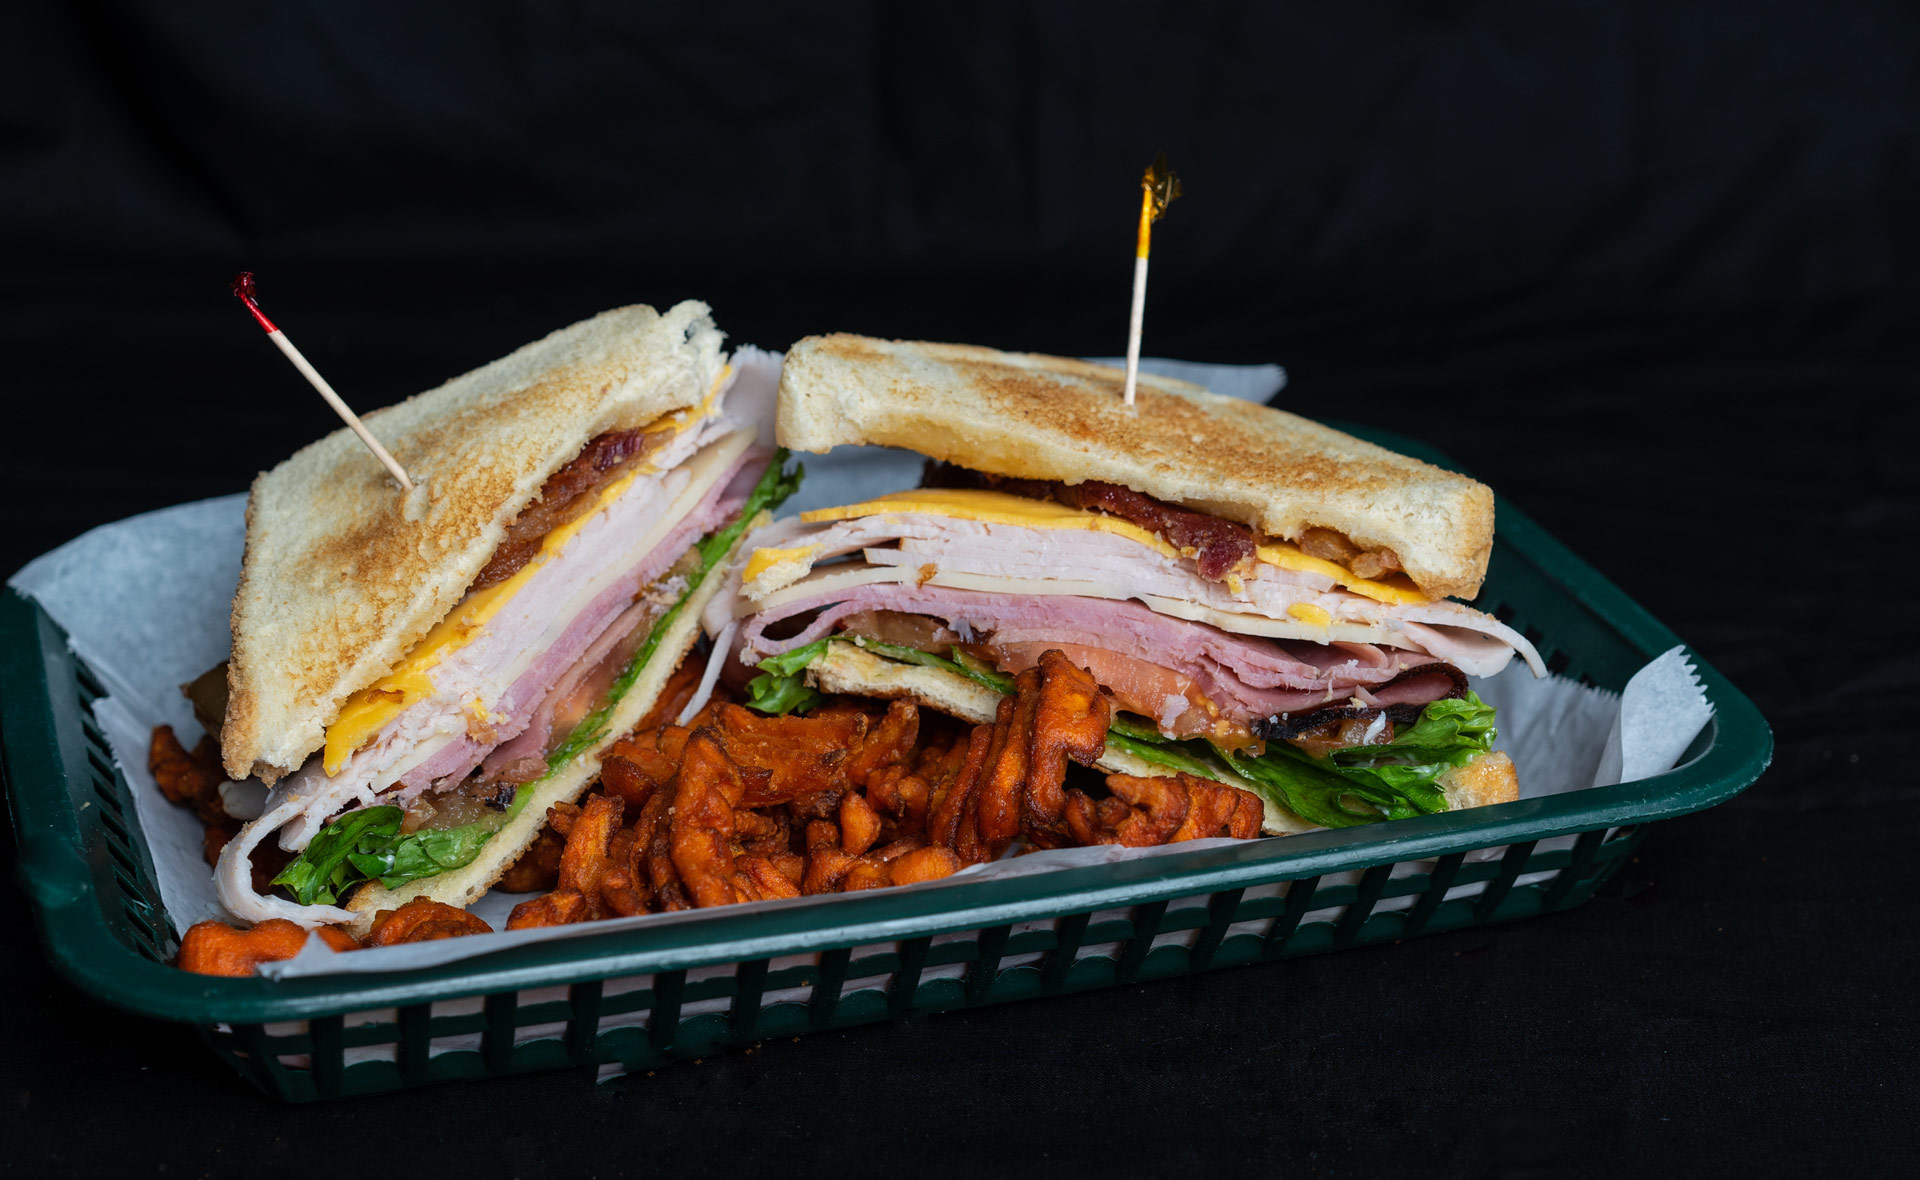 Mack's Club Sandwich Mountains of deli ham and turkey accented with crispy bacon, tomato, lettuce and cheese on Texas Toast. Served with your choice of steak fries, french fries, onion rings, chips, or Texas Toothpicks. 8.00